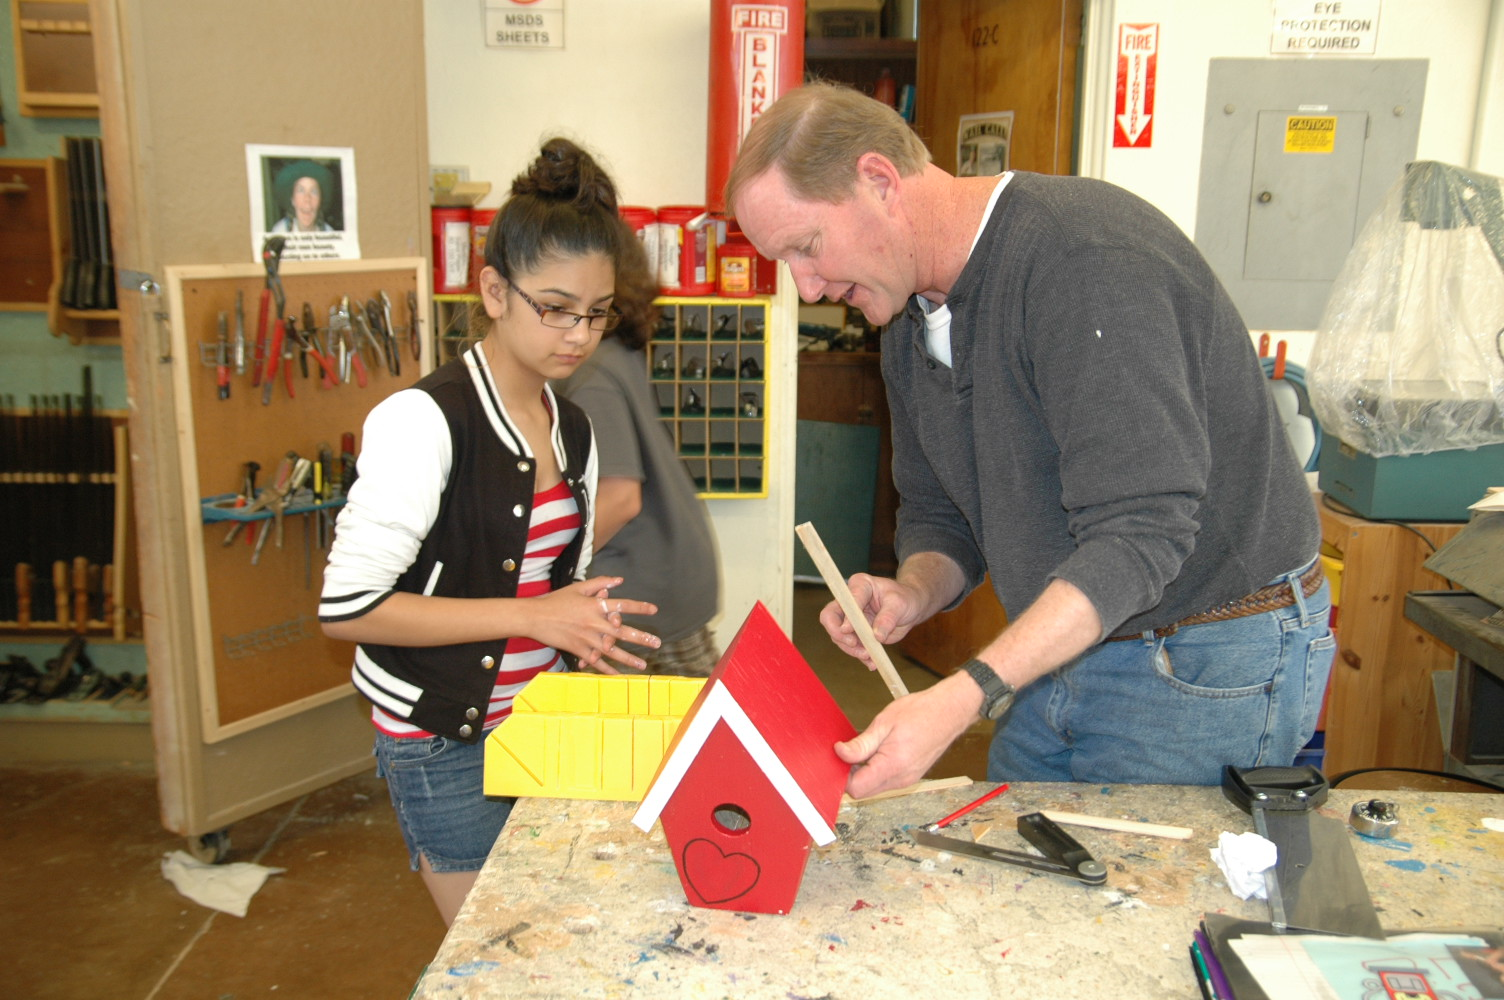 Jimmie Johnson Chevy >> Marston Middle School shop class using some of their new tools (San Diego, 2010)   Jimmie ...